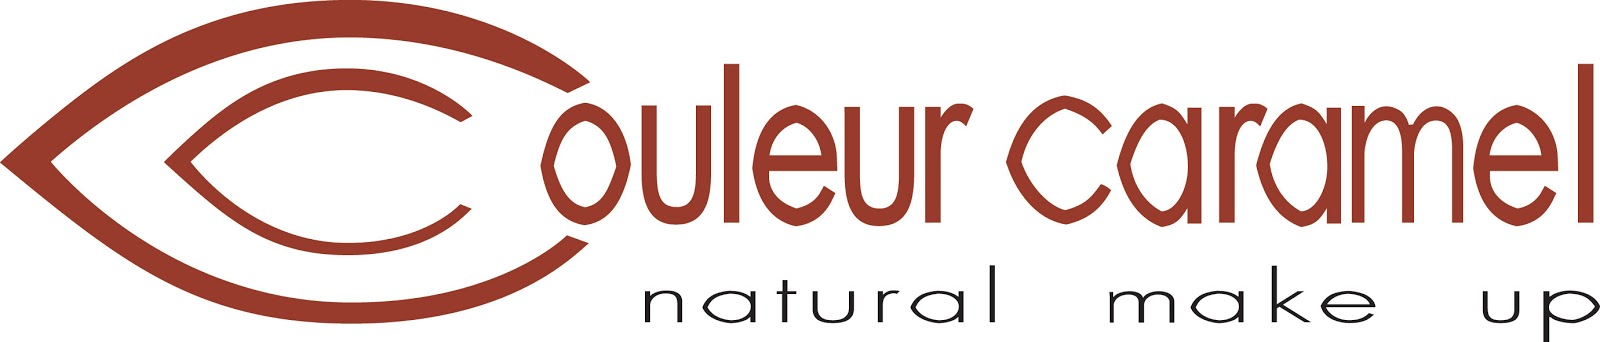 logo Couleur Caramel natural make upl